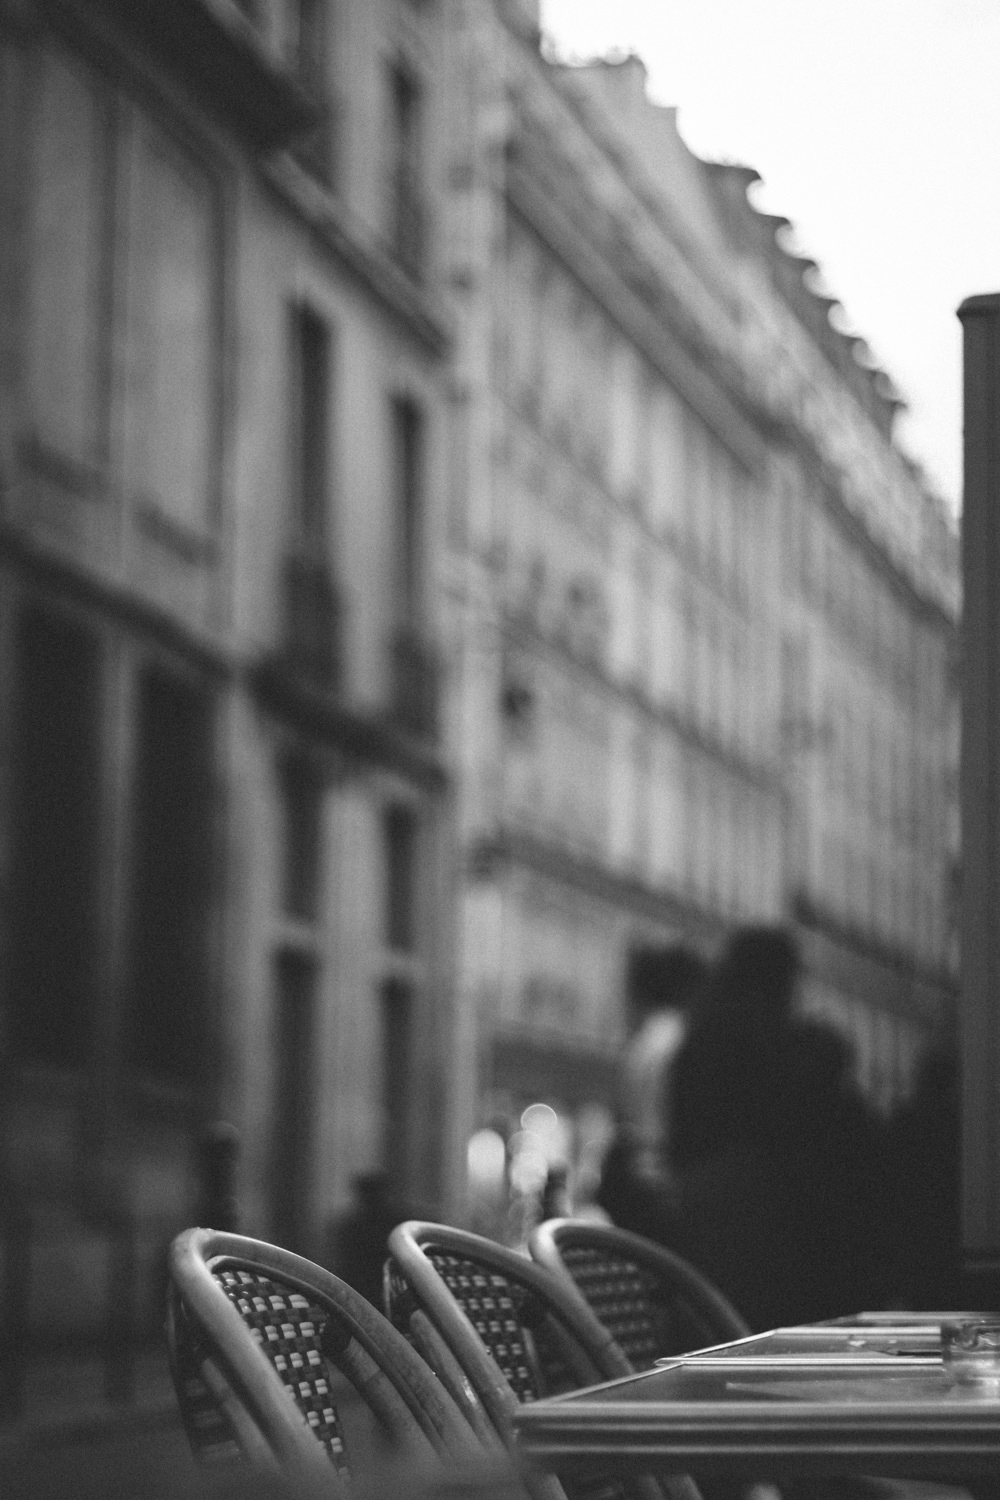 Paris France in black and white